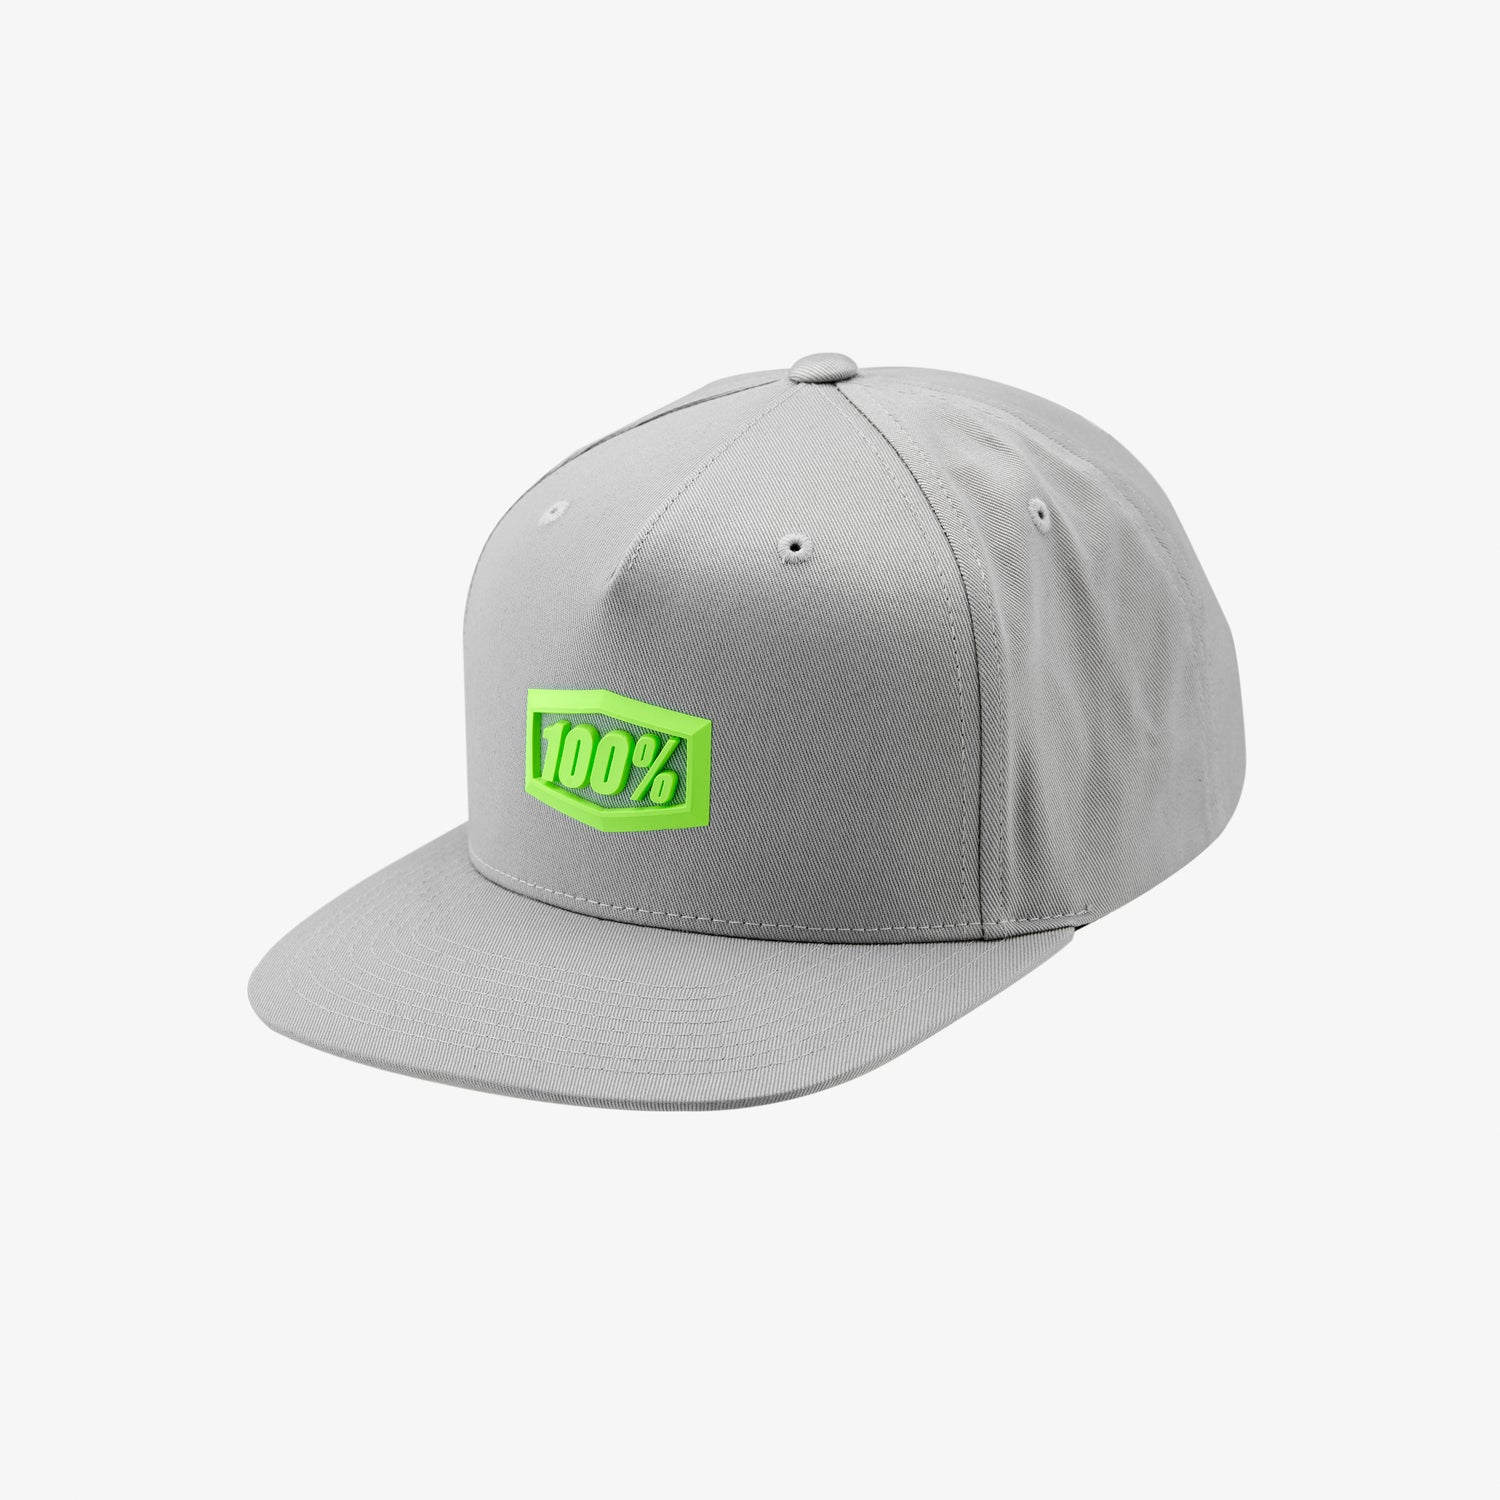 ENTERPRISE Snapback Hat Vapor